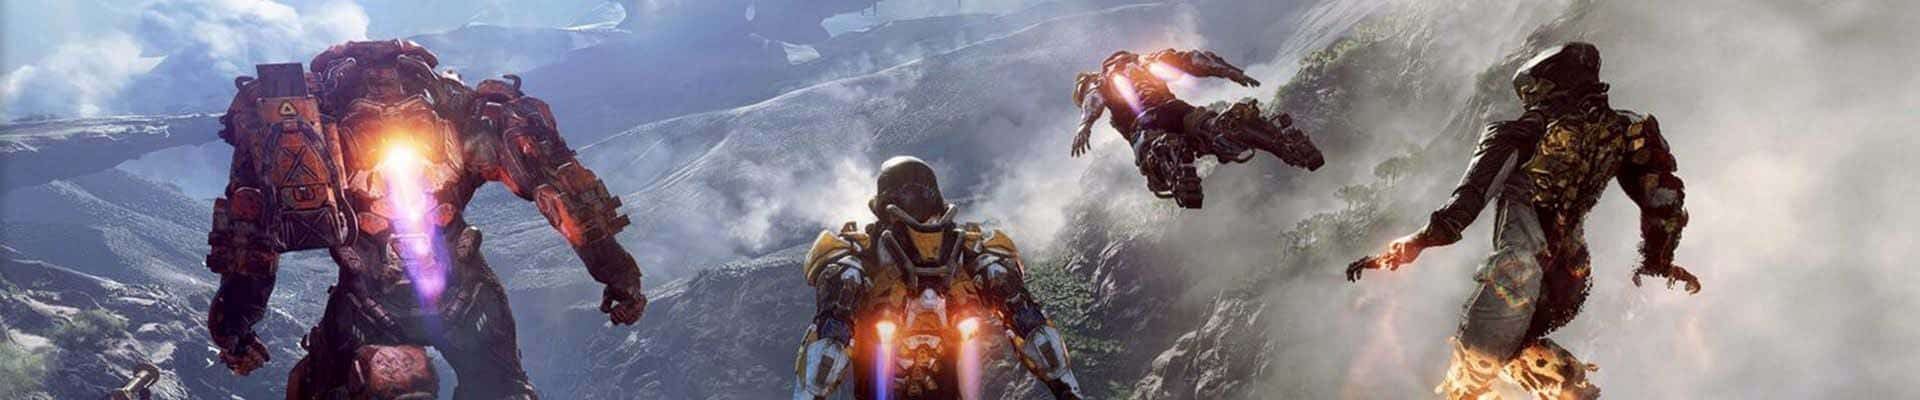 Anthem Release Date, Trailer, News and Rumors